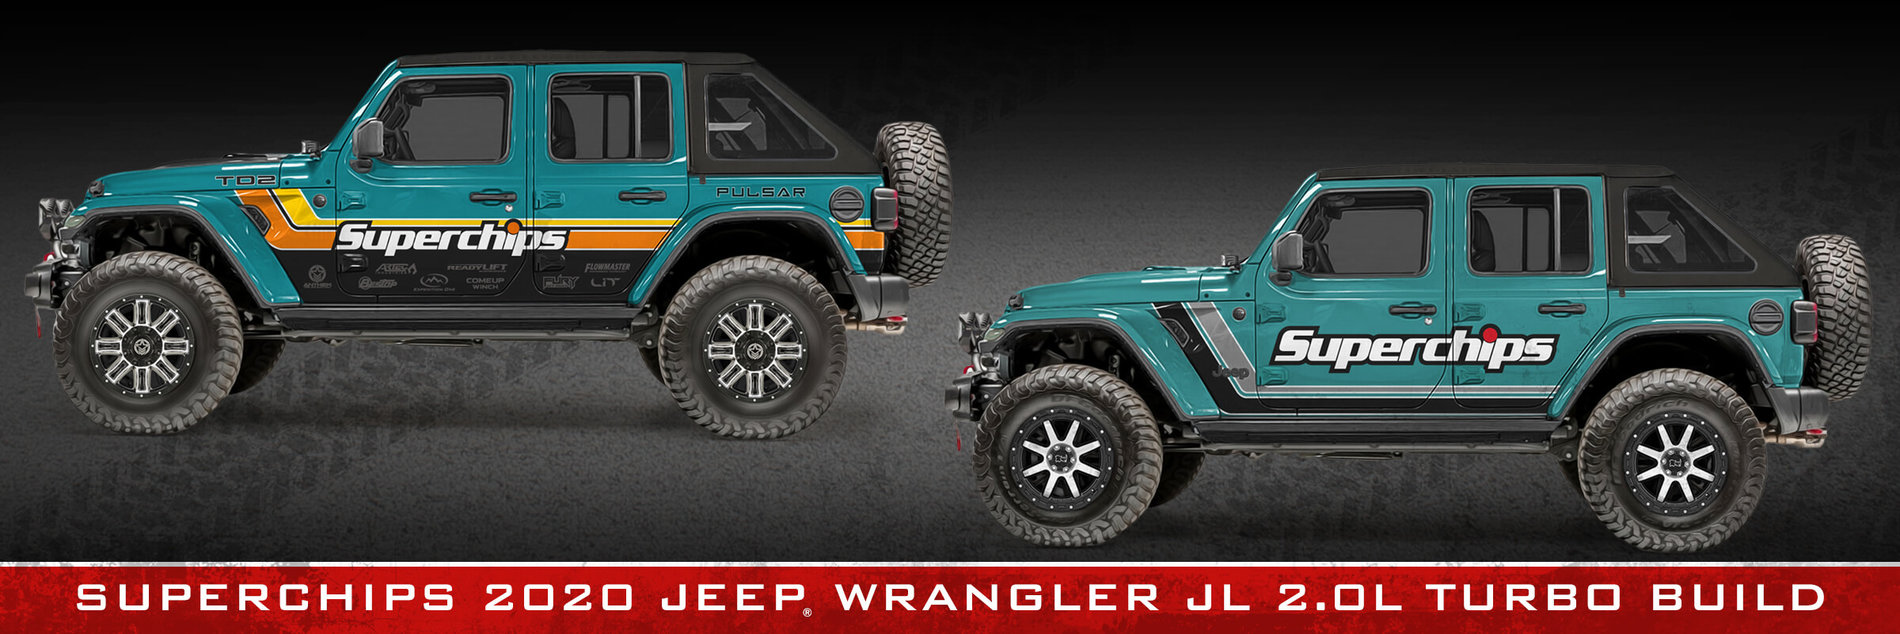 SC_2020 Jeep JL Build News Story_2400_x_800_2.jpg